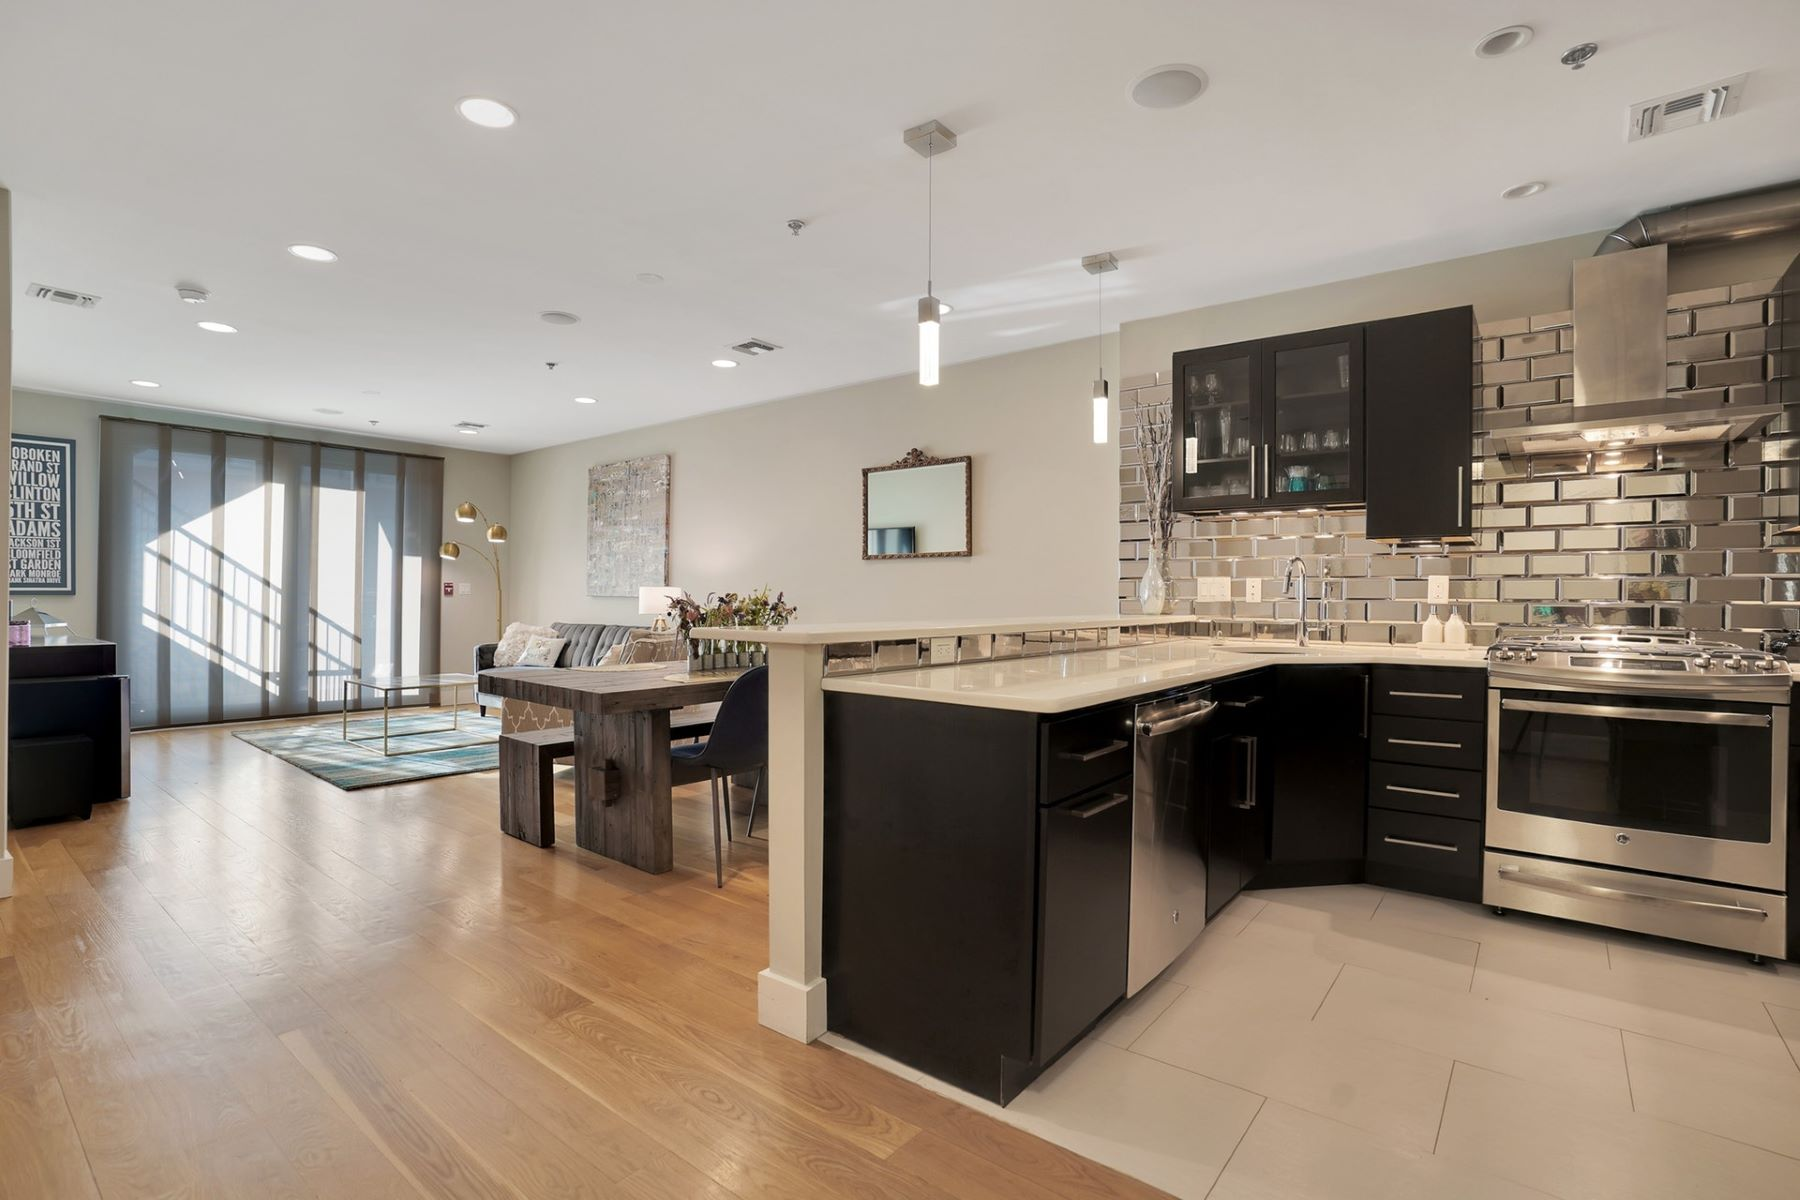 Condominiums for Sale at Rarely available is this 3 bedroom 2 bath condo centrally located within Hoboken 626 Grand Street #3 Hoboken, New Jersey 07030 United States